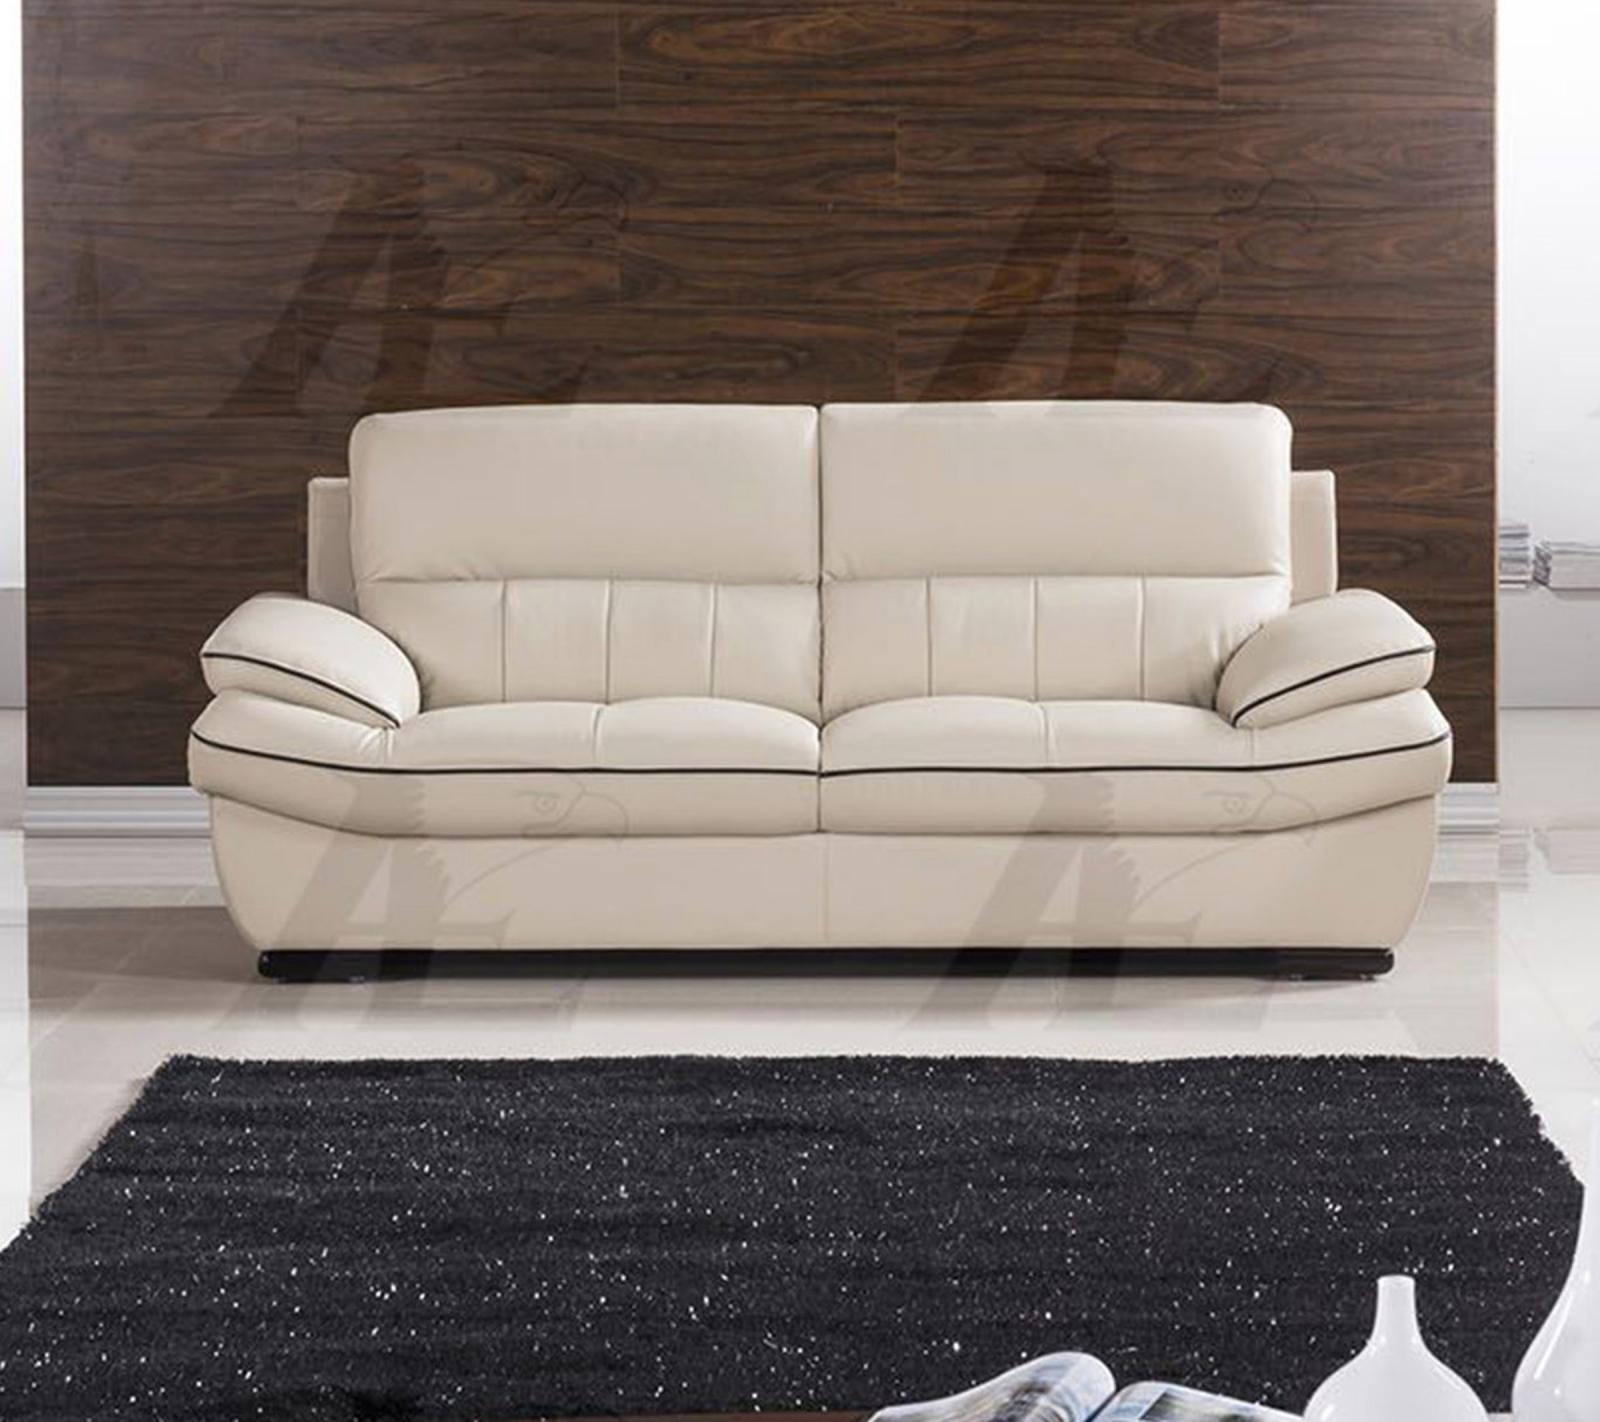 American Eagle EK-B305-LG.BK Light Gray Sofa Genuine Leather